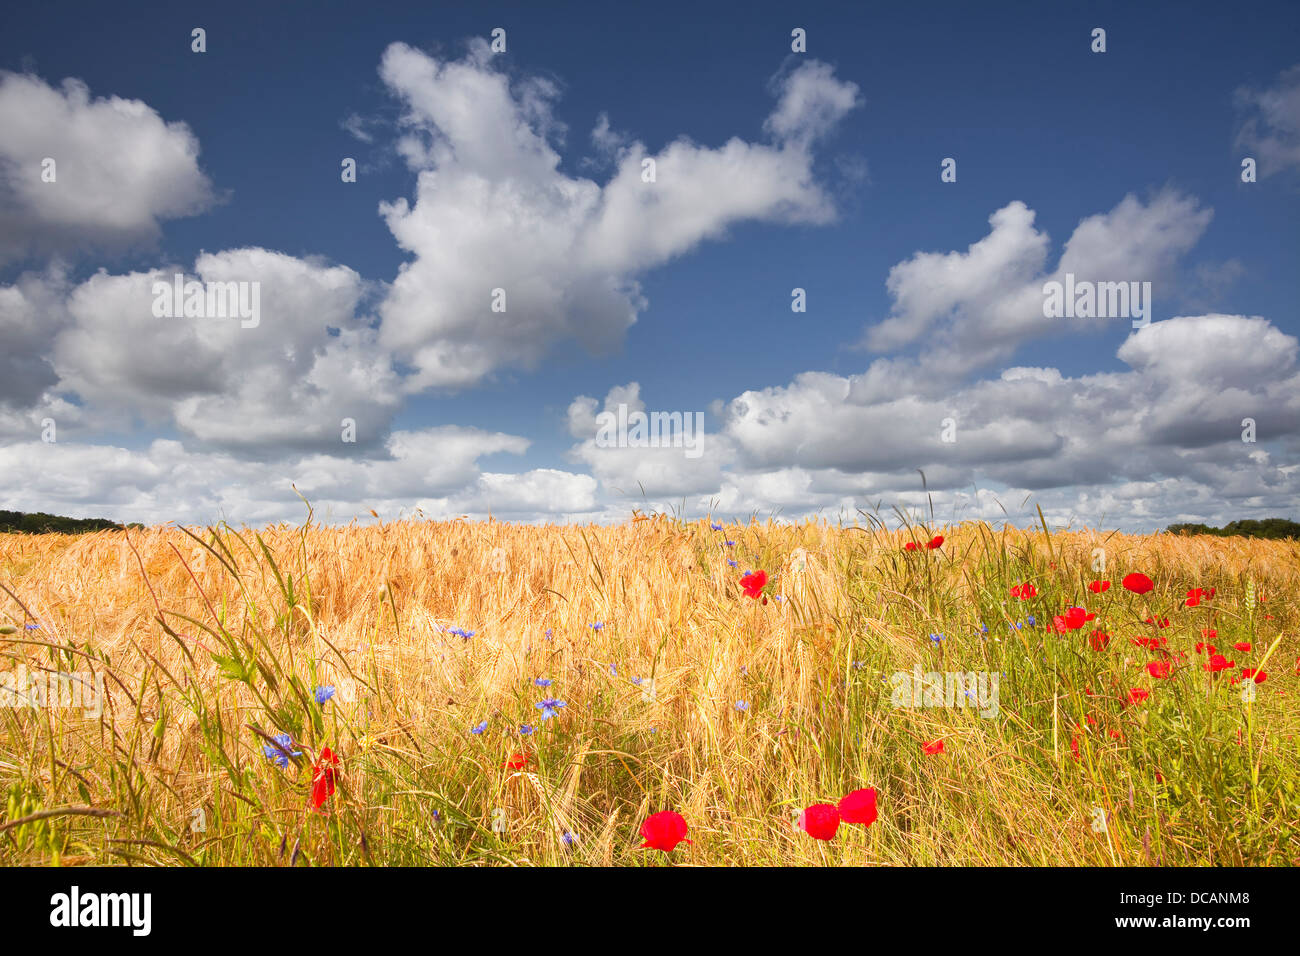 Wildflowers and poppies in a wheat field in Champagne. - Stock Image